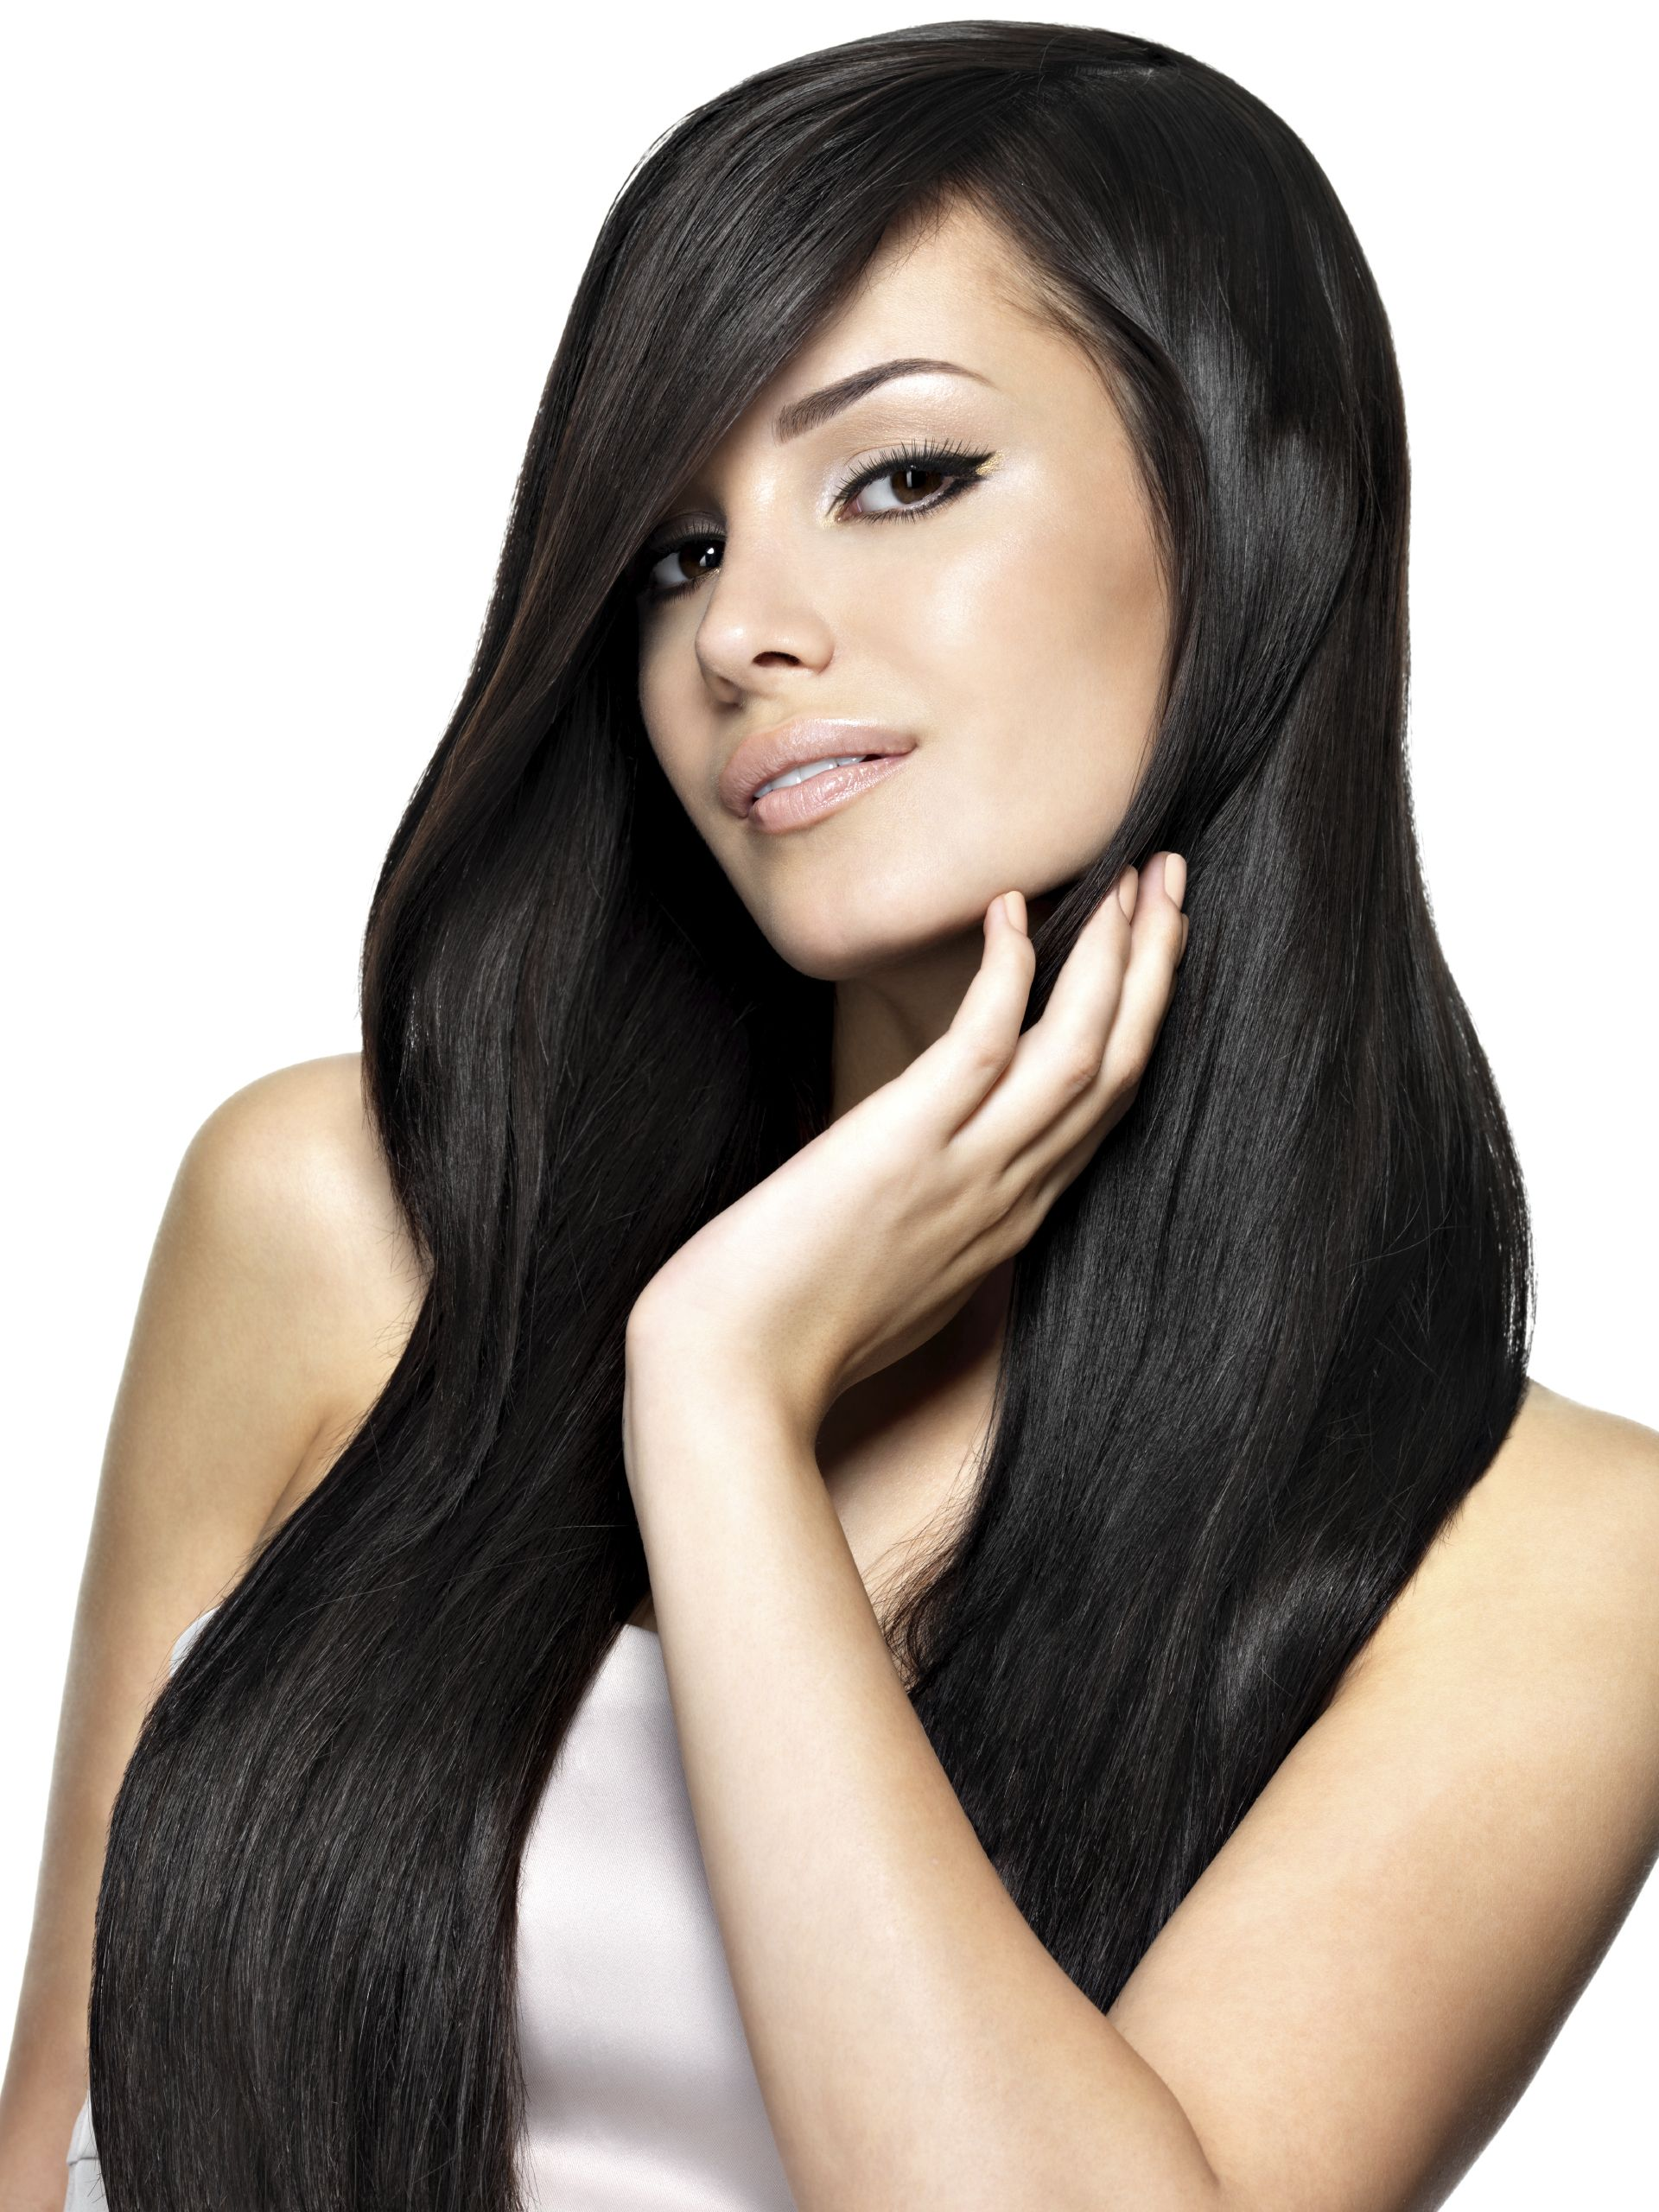 Straight perm groupon - Explore Hair Extension Care Groupon And More